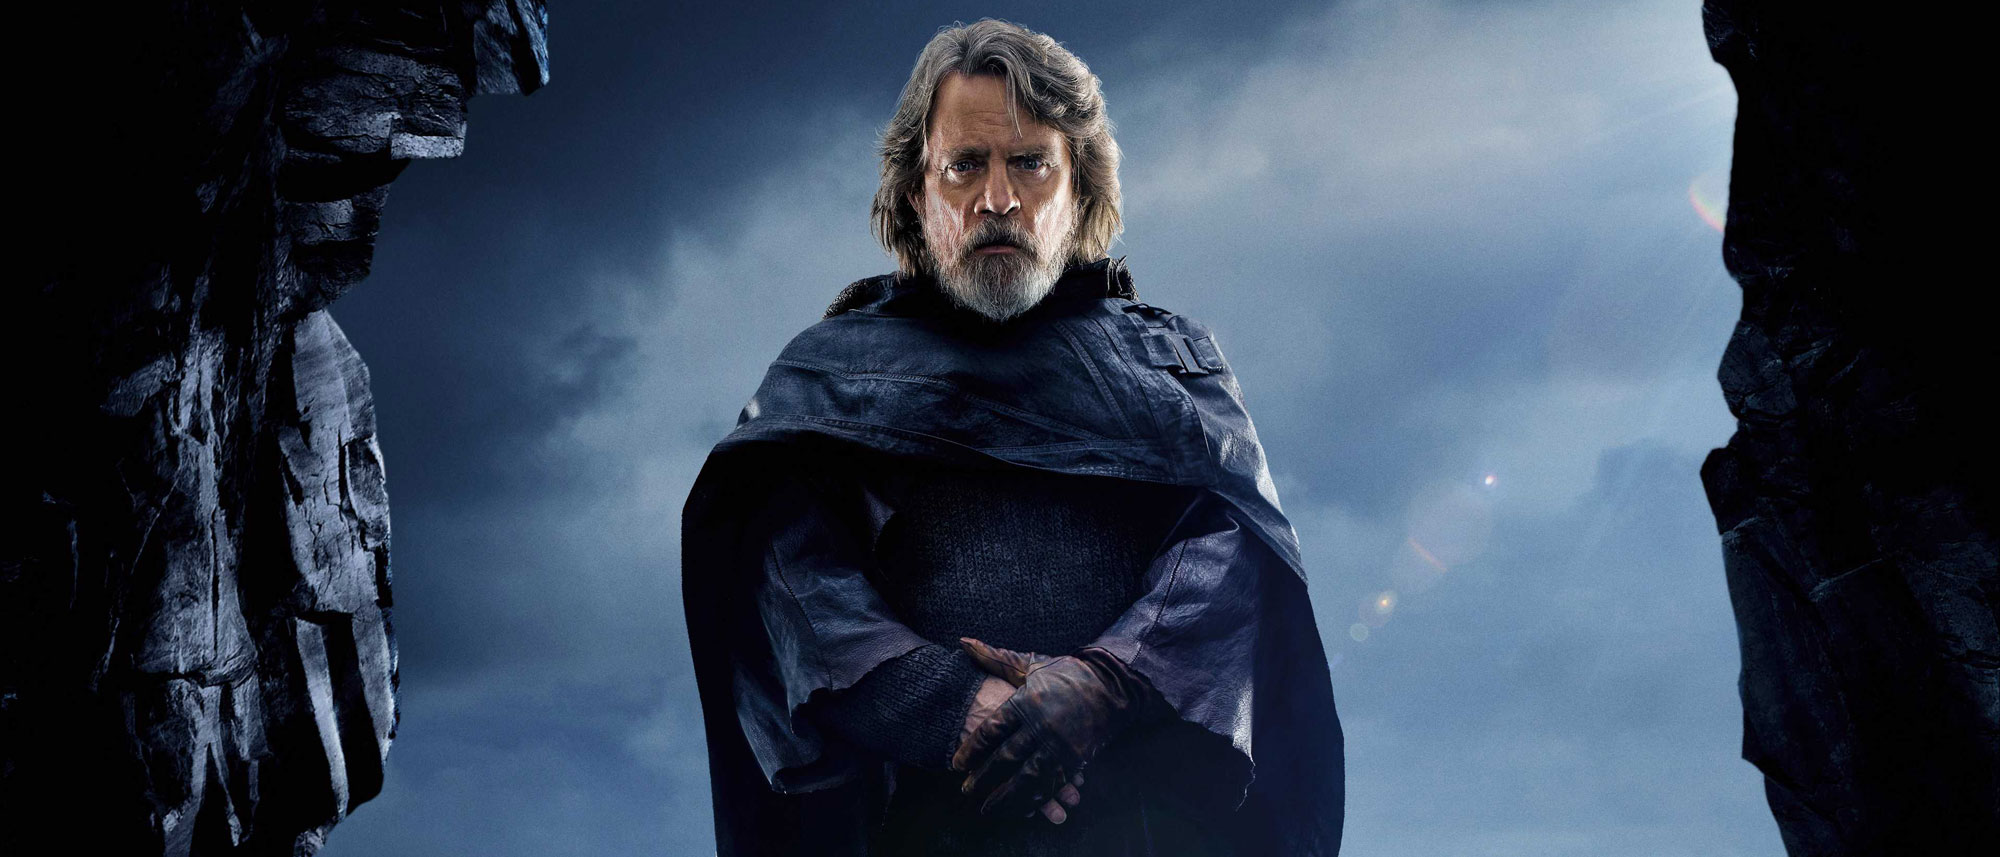 Luke Skywalker The Last Jedi Star Wars The Mandalorian Jedi